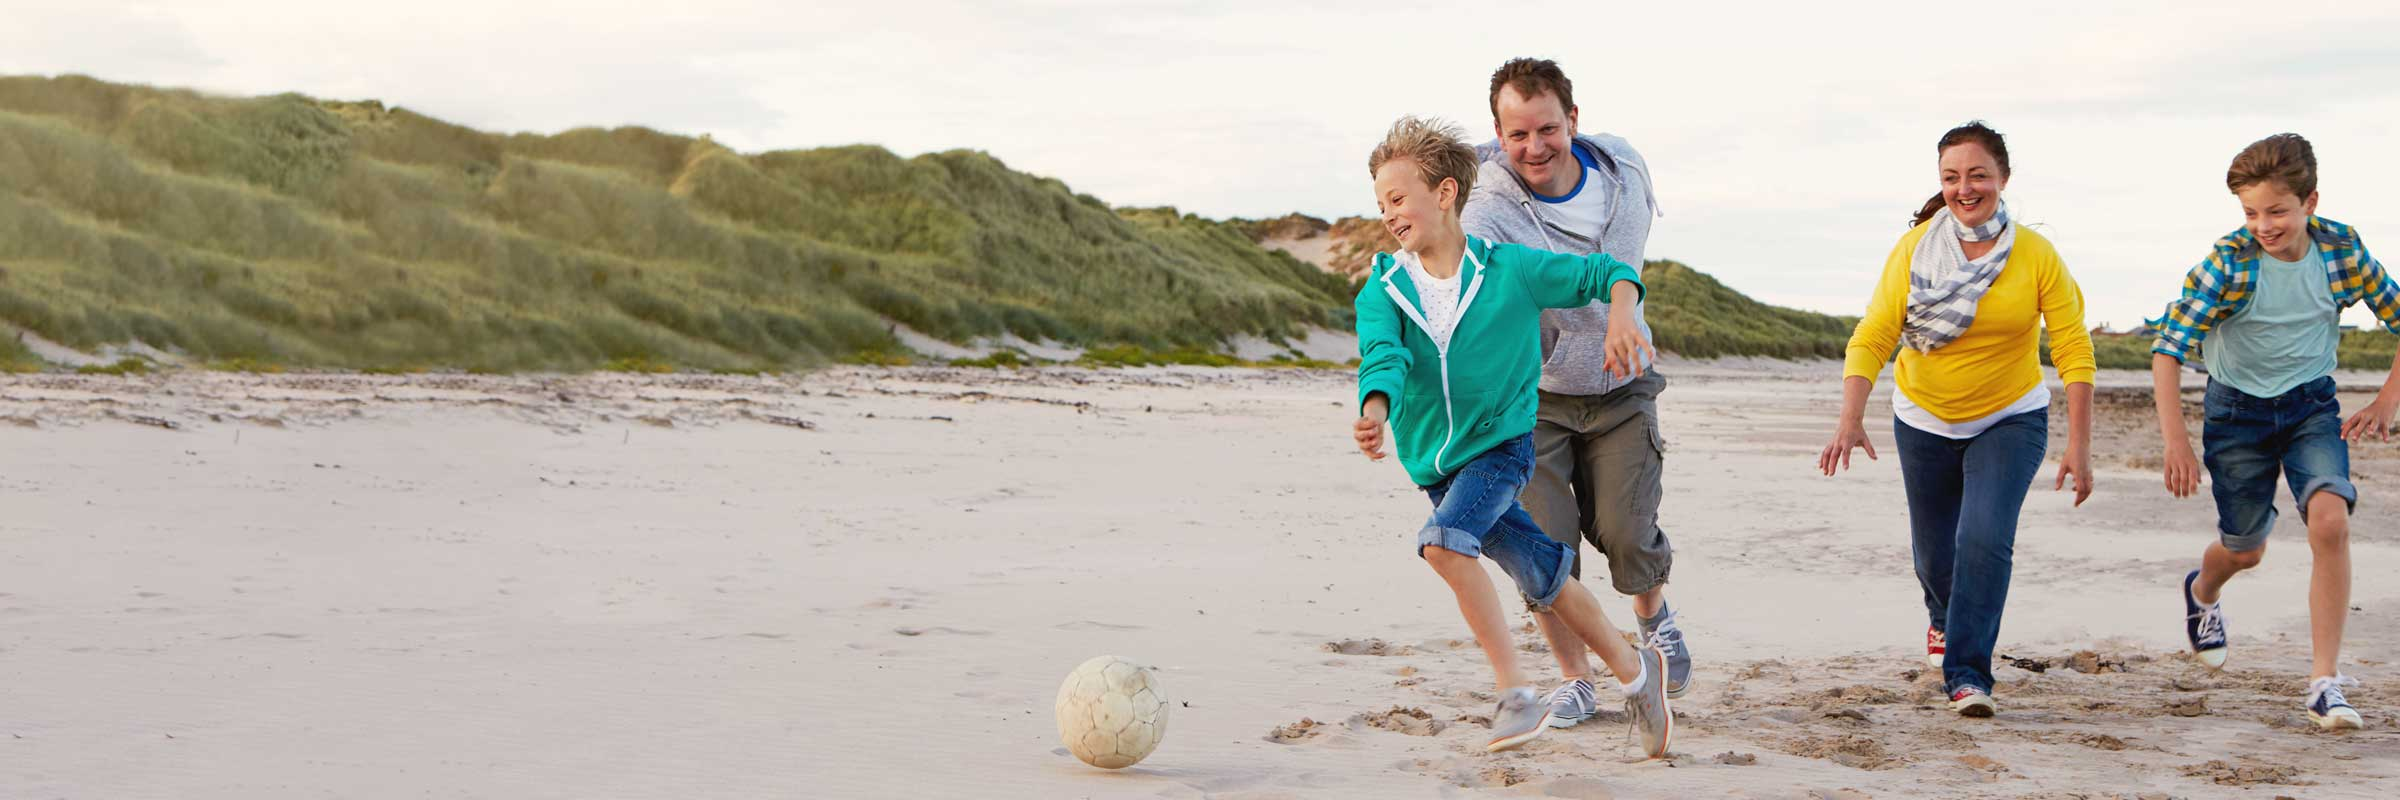 A family plays football on the beach.